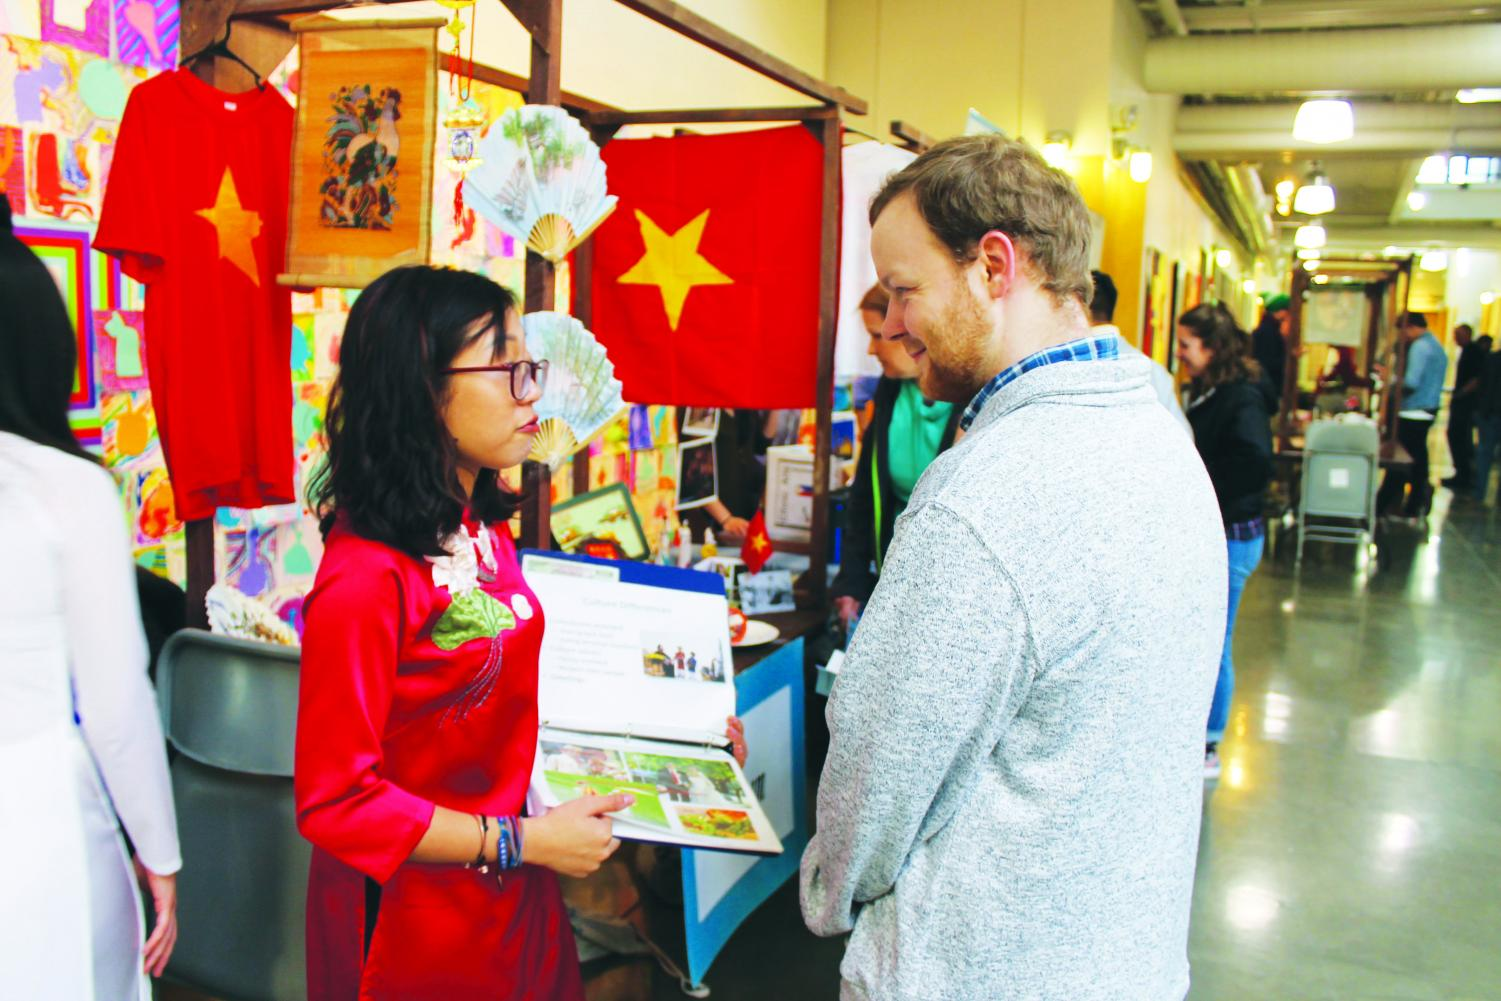 Minh Anh Nguyen ('20) shares information about Vietnam with Geoffrey Dyck ('18) at the Ethnic Arts Festival.